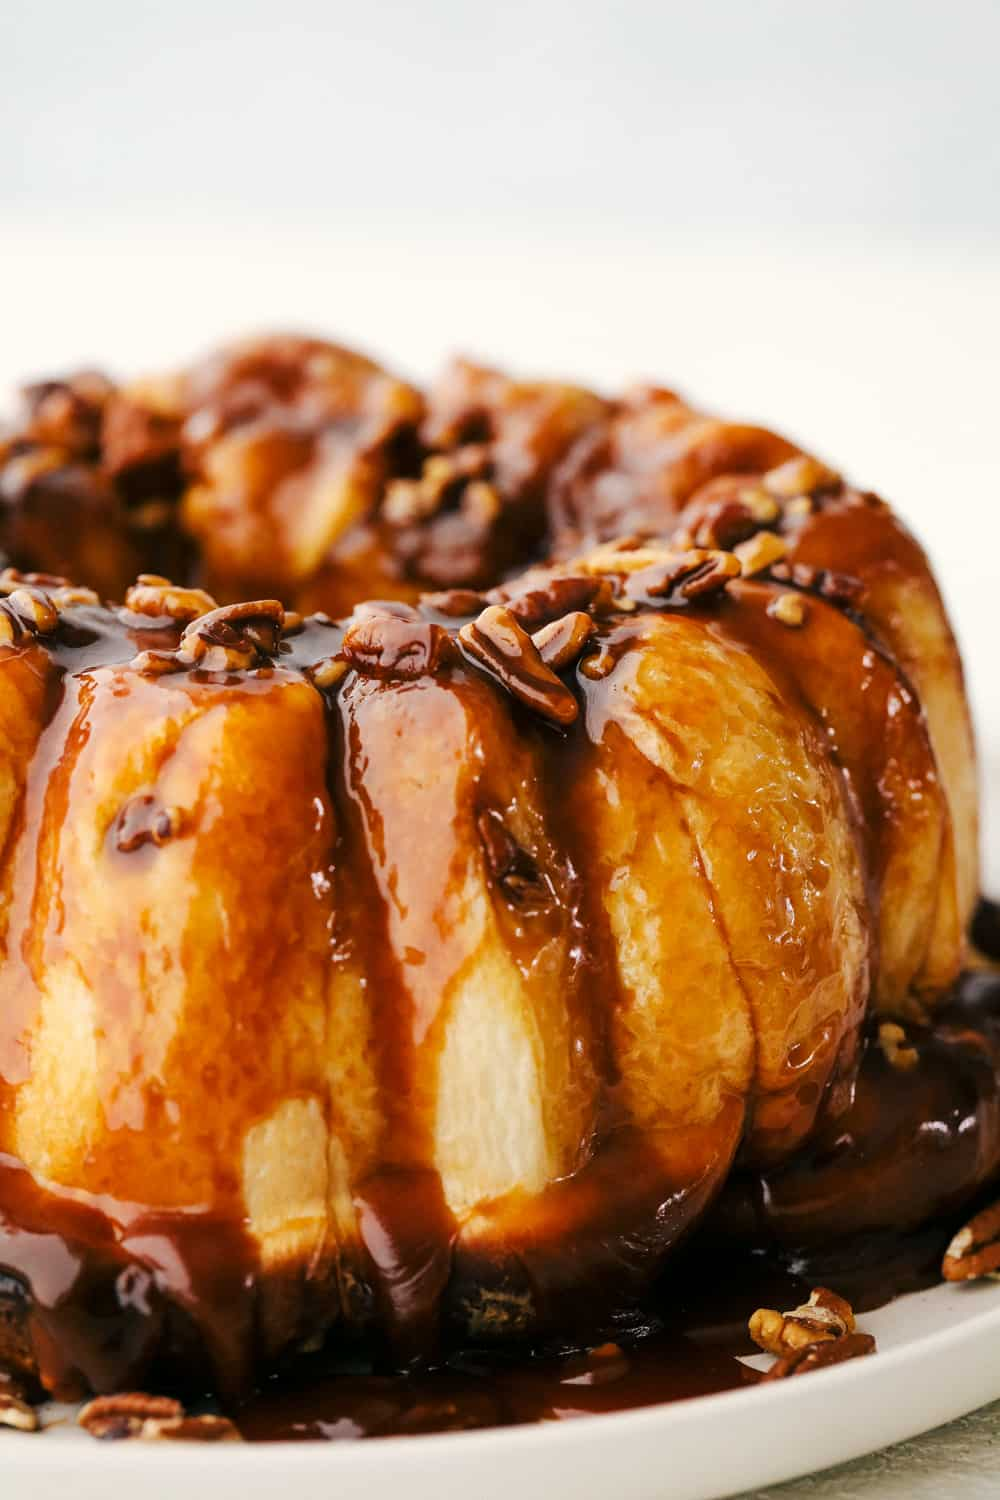 Sticky buns with caramel sauce ready to eat.